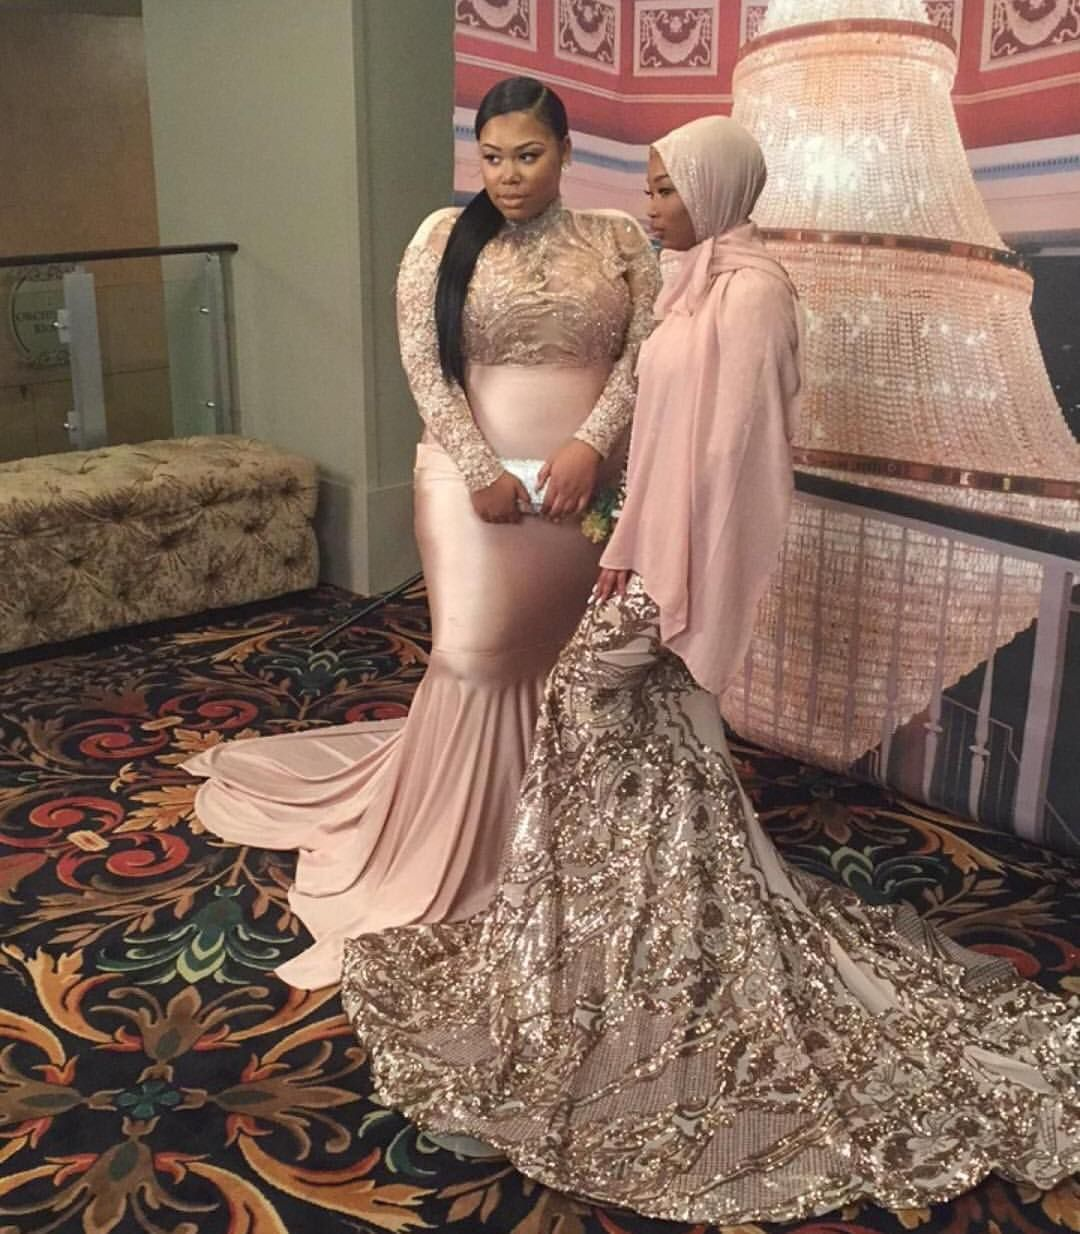 5 329 Likes 22 Comments Slay Or Get Slayed 1000shades Ofprom Slay On Instagram Bilqisol Prom Dress Inspiration Plus Size Prom Dresses Prom Couples [ 1234 x 1080 Pixel ]